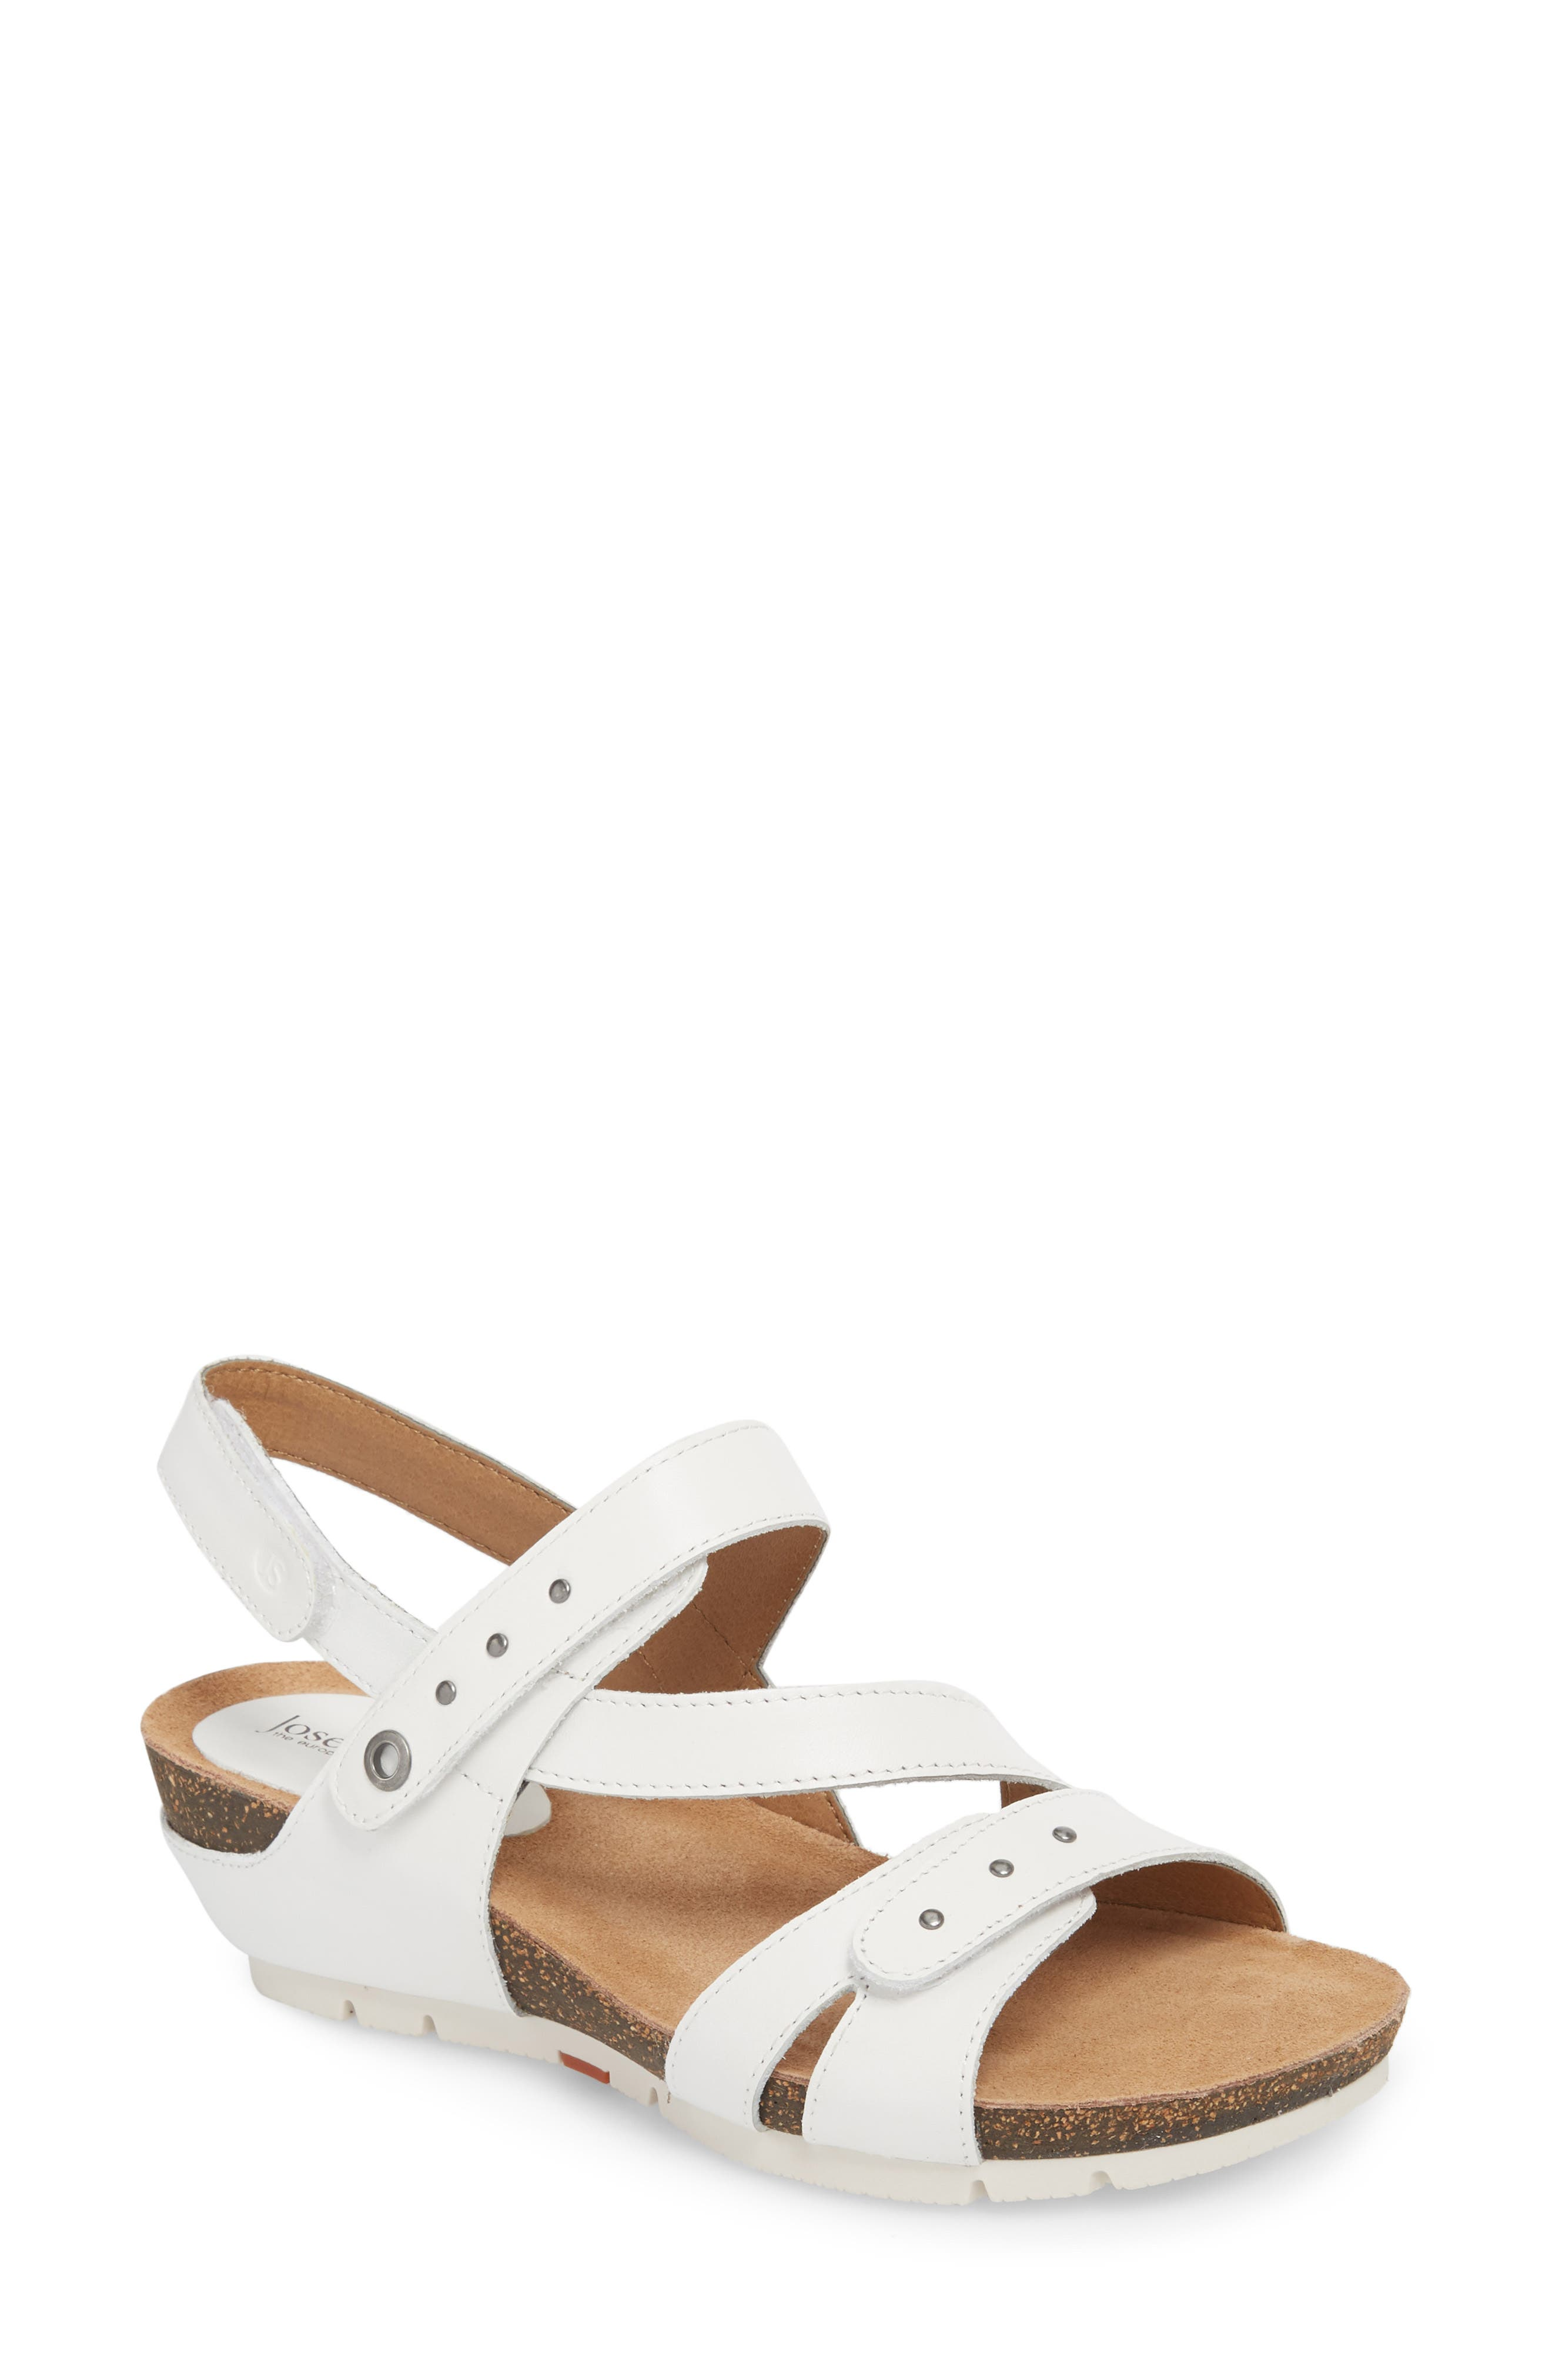 Main Image - Josef Seibel Hailey 33 Sandal (Women)